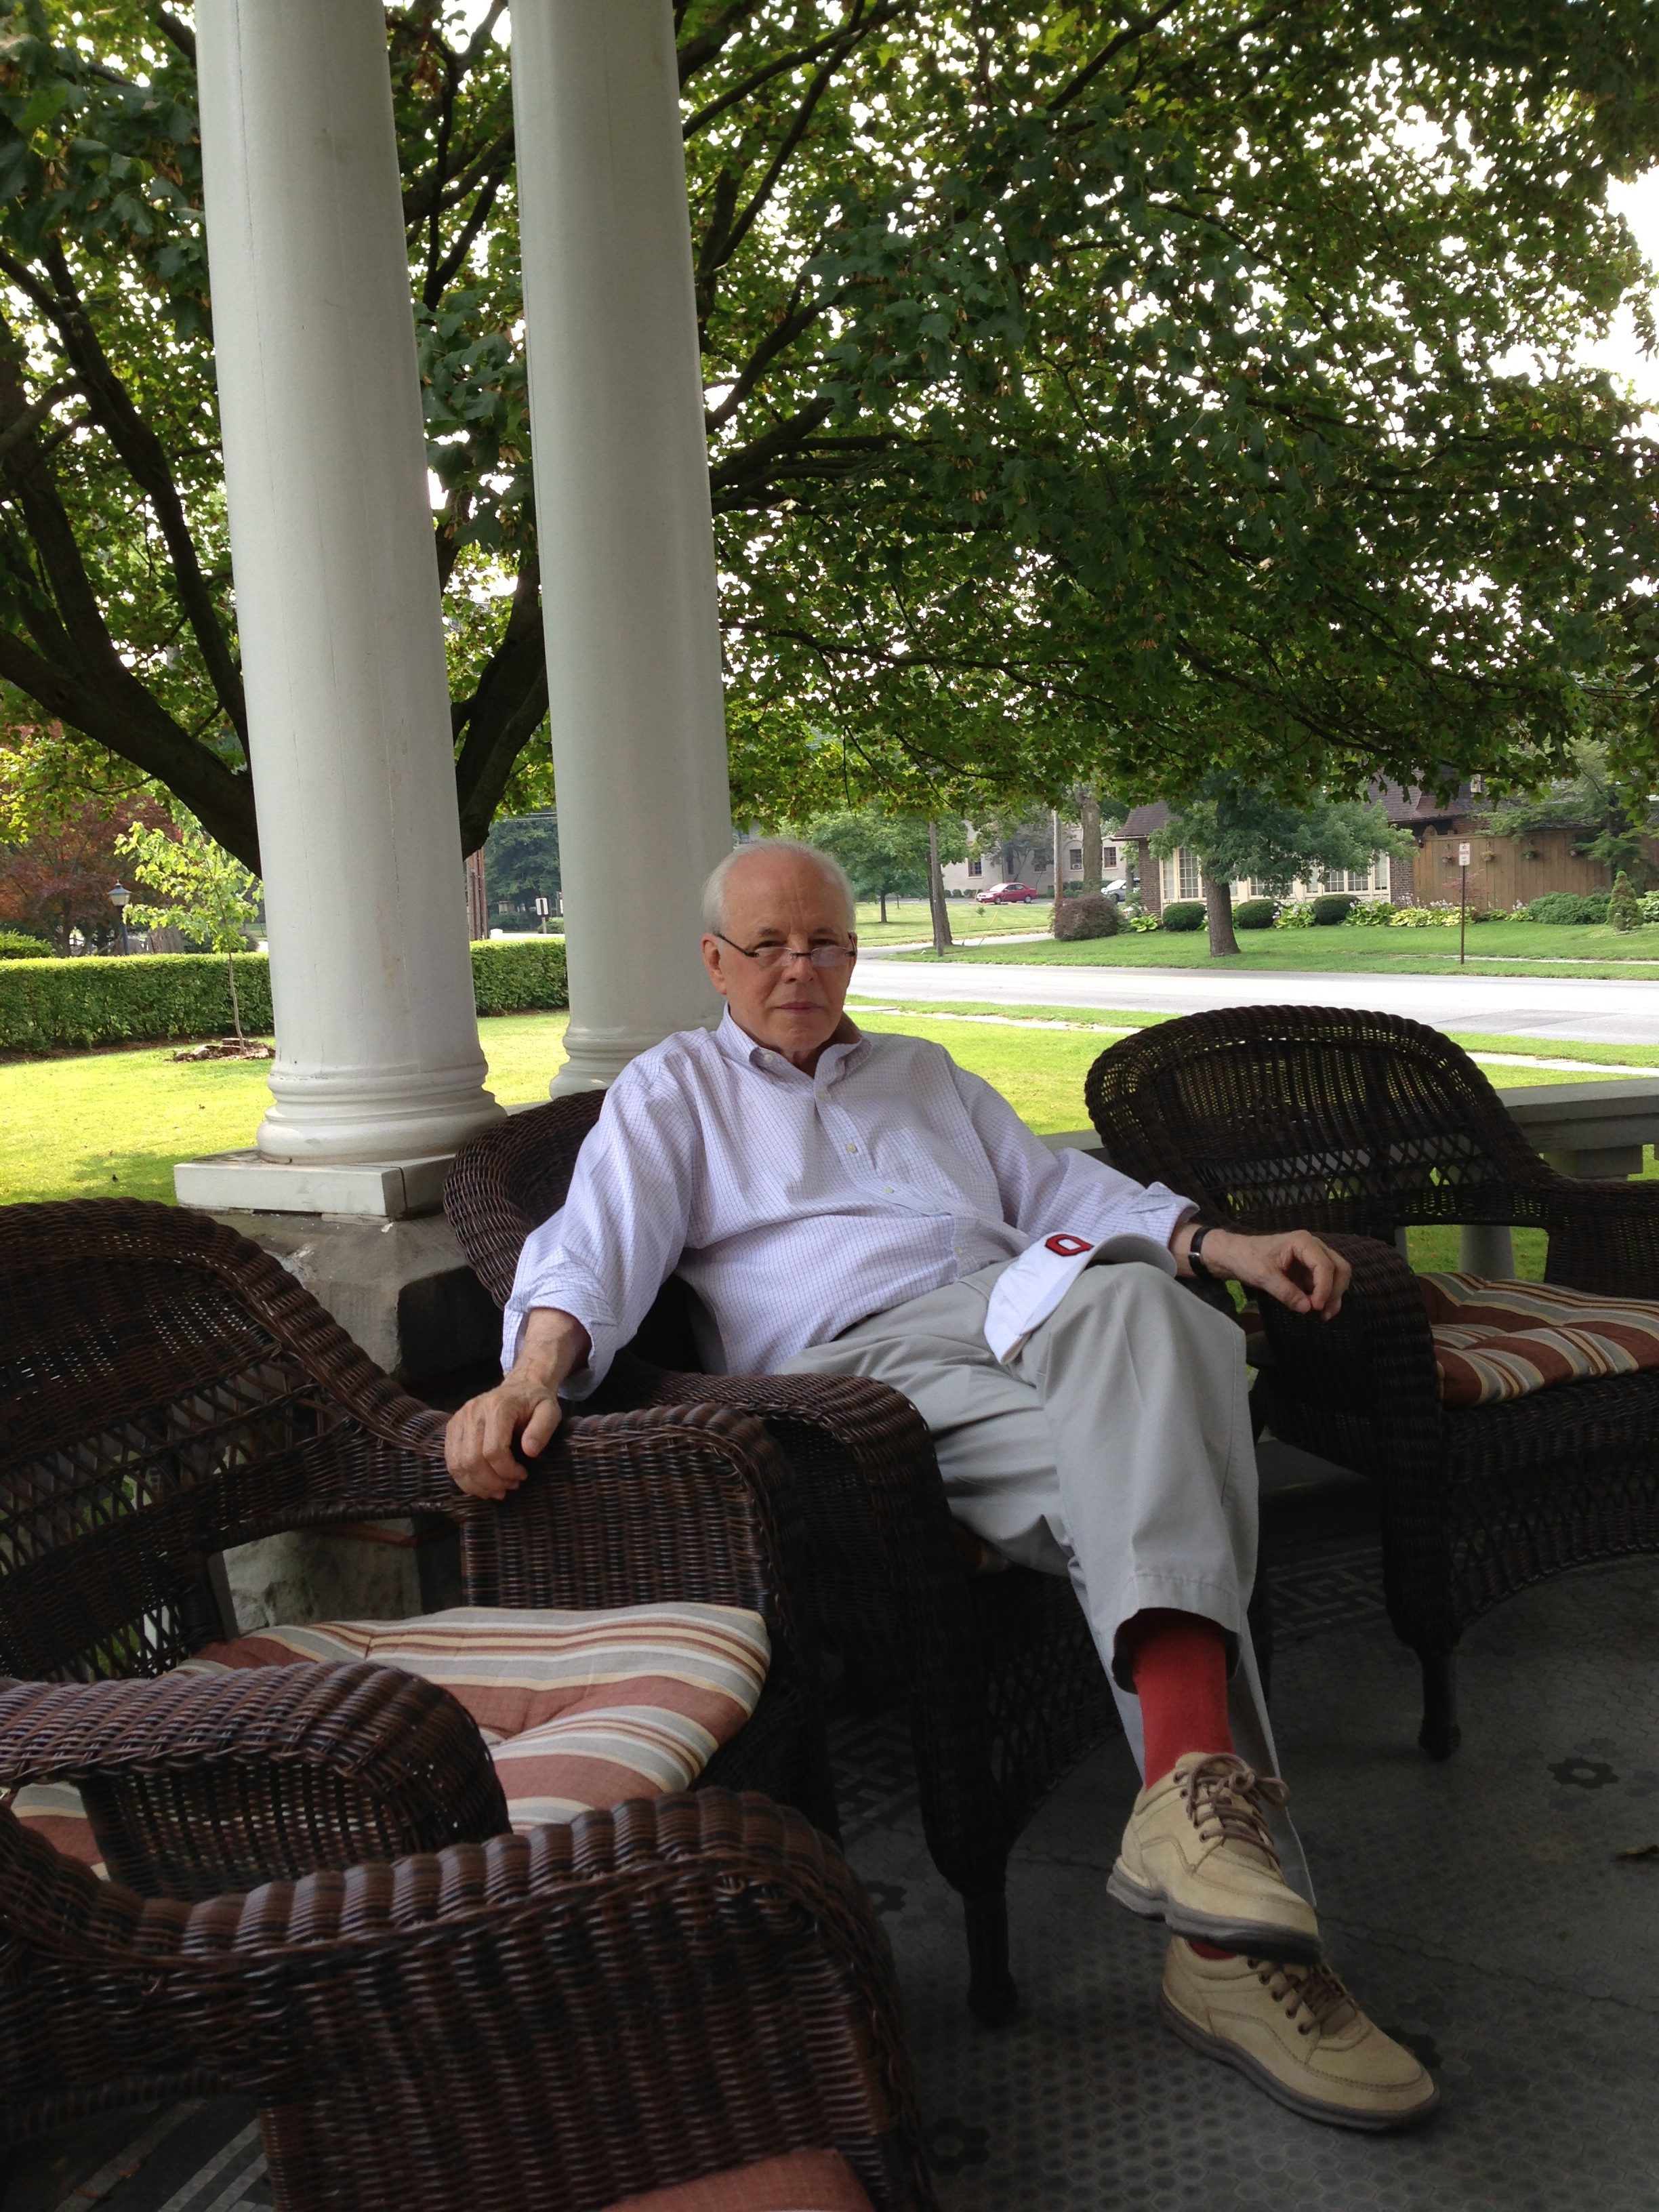 John Dean on Warren Harding's front porch in Marion, Ohio.  Dean lived in Marion and wrote a biography of Harding for Arthur Schlesinger, Jr., as part of The American Presidents Series.   Warren G. Harding  (New York, Times Books, 2004). This front porch hosted the last front porch campaign.  Two Ohioans, Harding and James Cox, ran against each other in 1920 for the presidency.  Harding won in a landslide.  Cox's vice presidential candidate, Franklin D. Roosevelt, would go on to win the presidency four times.